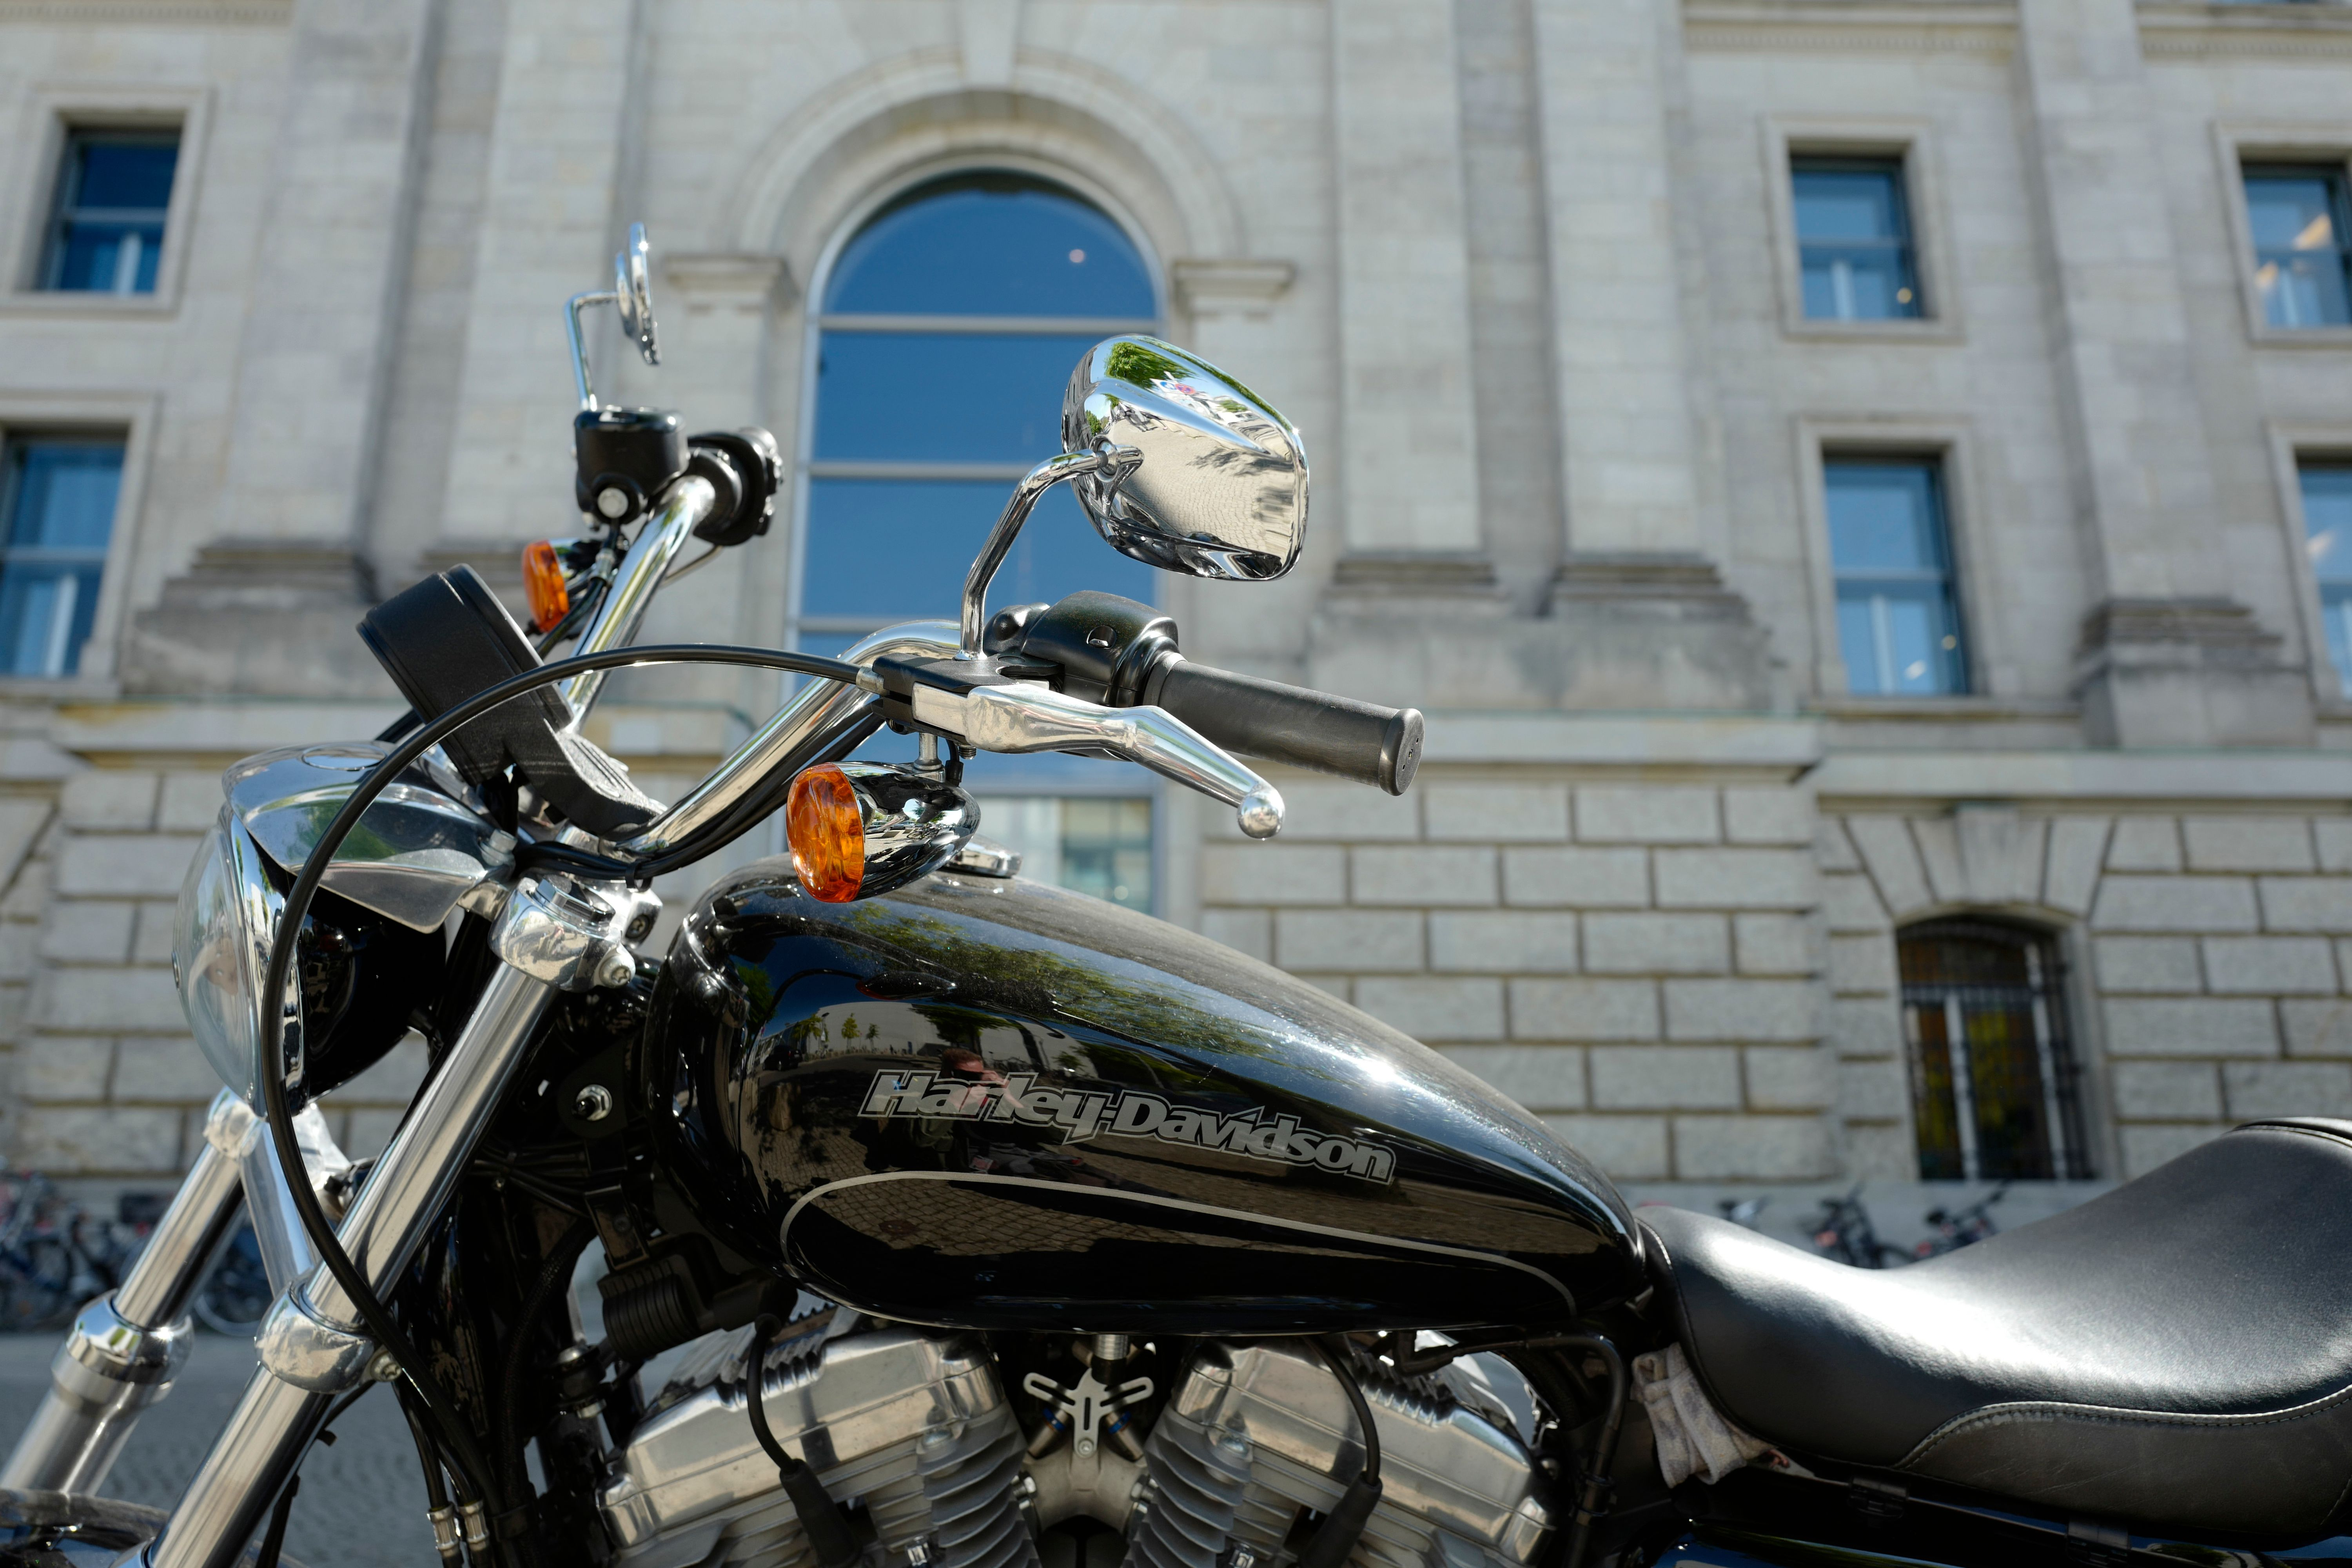 A picture taken on June 26, 2018 shows a Harley-Davidson motorbike parked in front of the Reichstag building which houses Germany's Bundestag lower house of parliament.